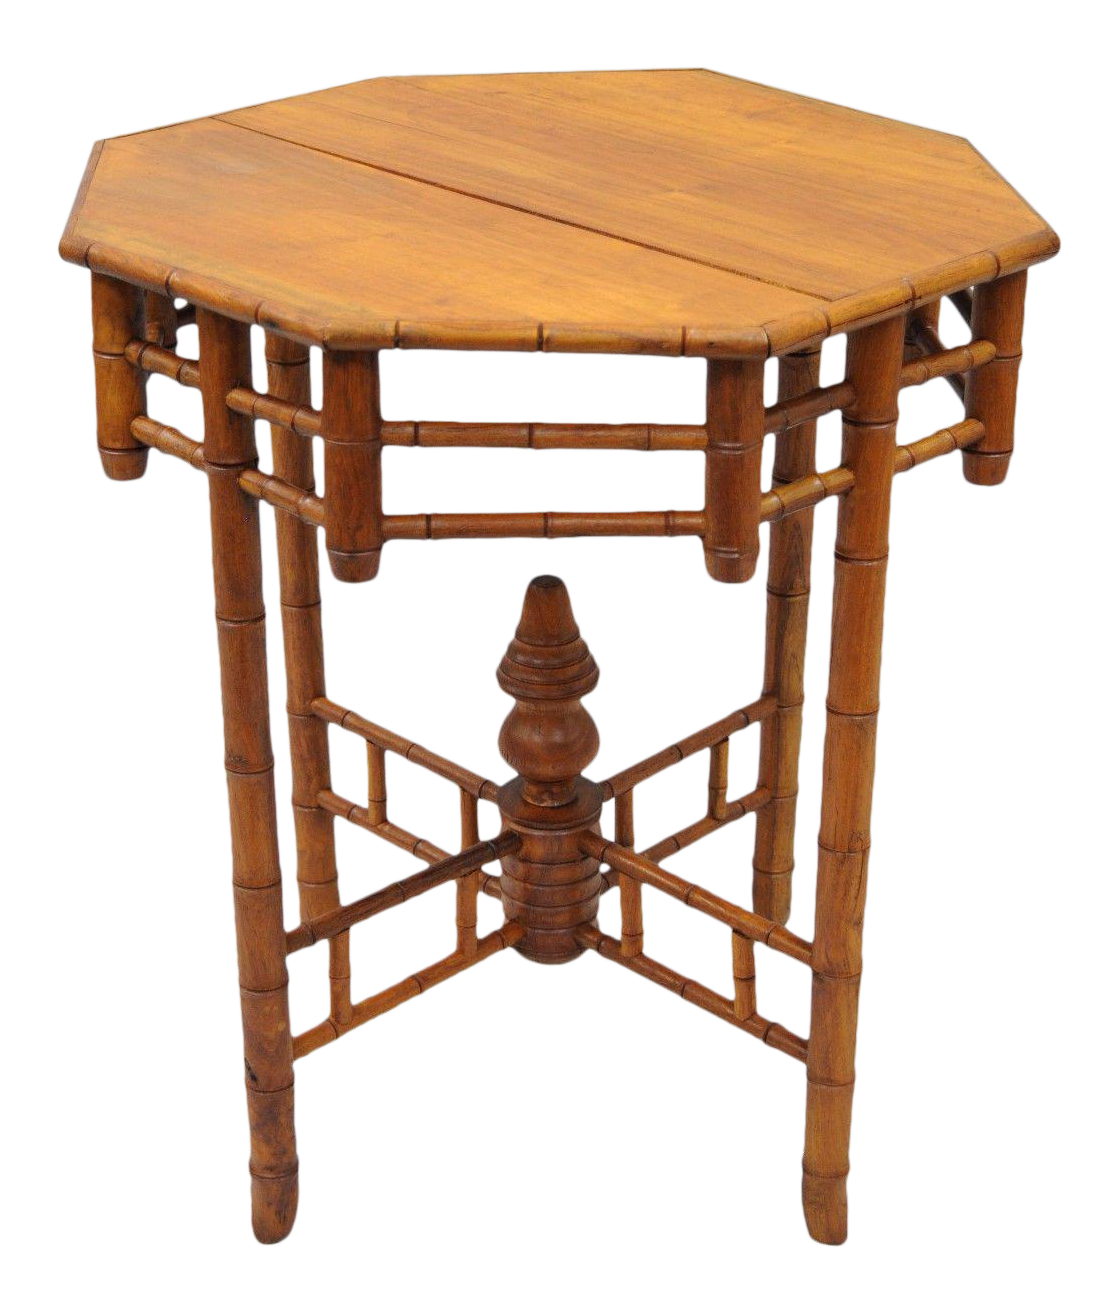 vintage octagonal oriental english victorian style faux bamboo side table teak wood end tables chairish grain chopping board black and white round coffee drum accent coastal